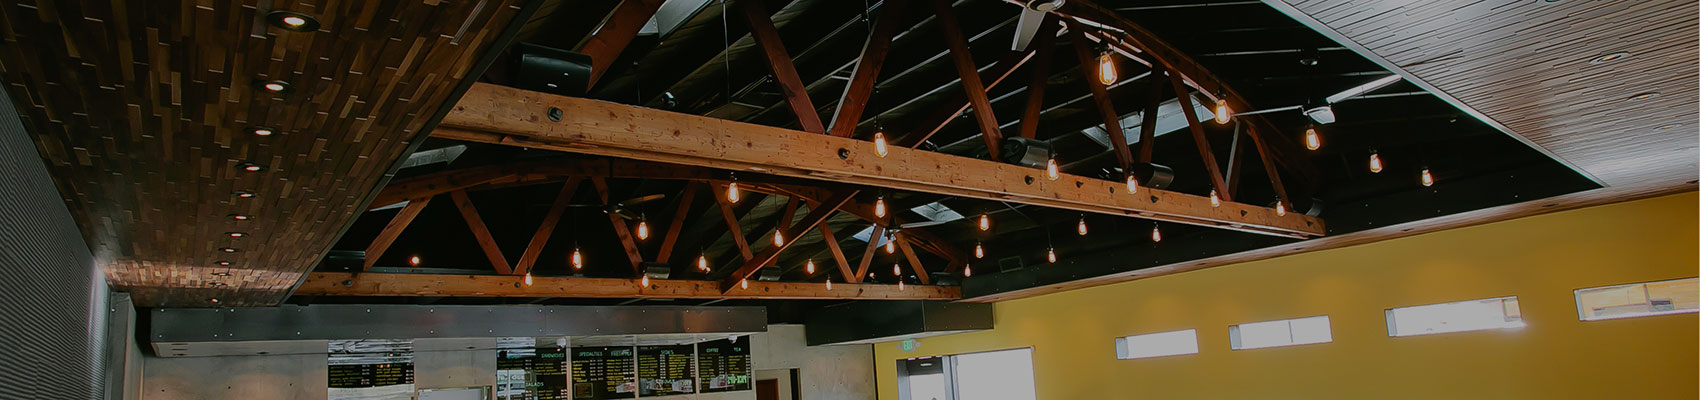 Gallery header image exposed wood ceiling